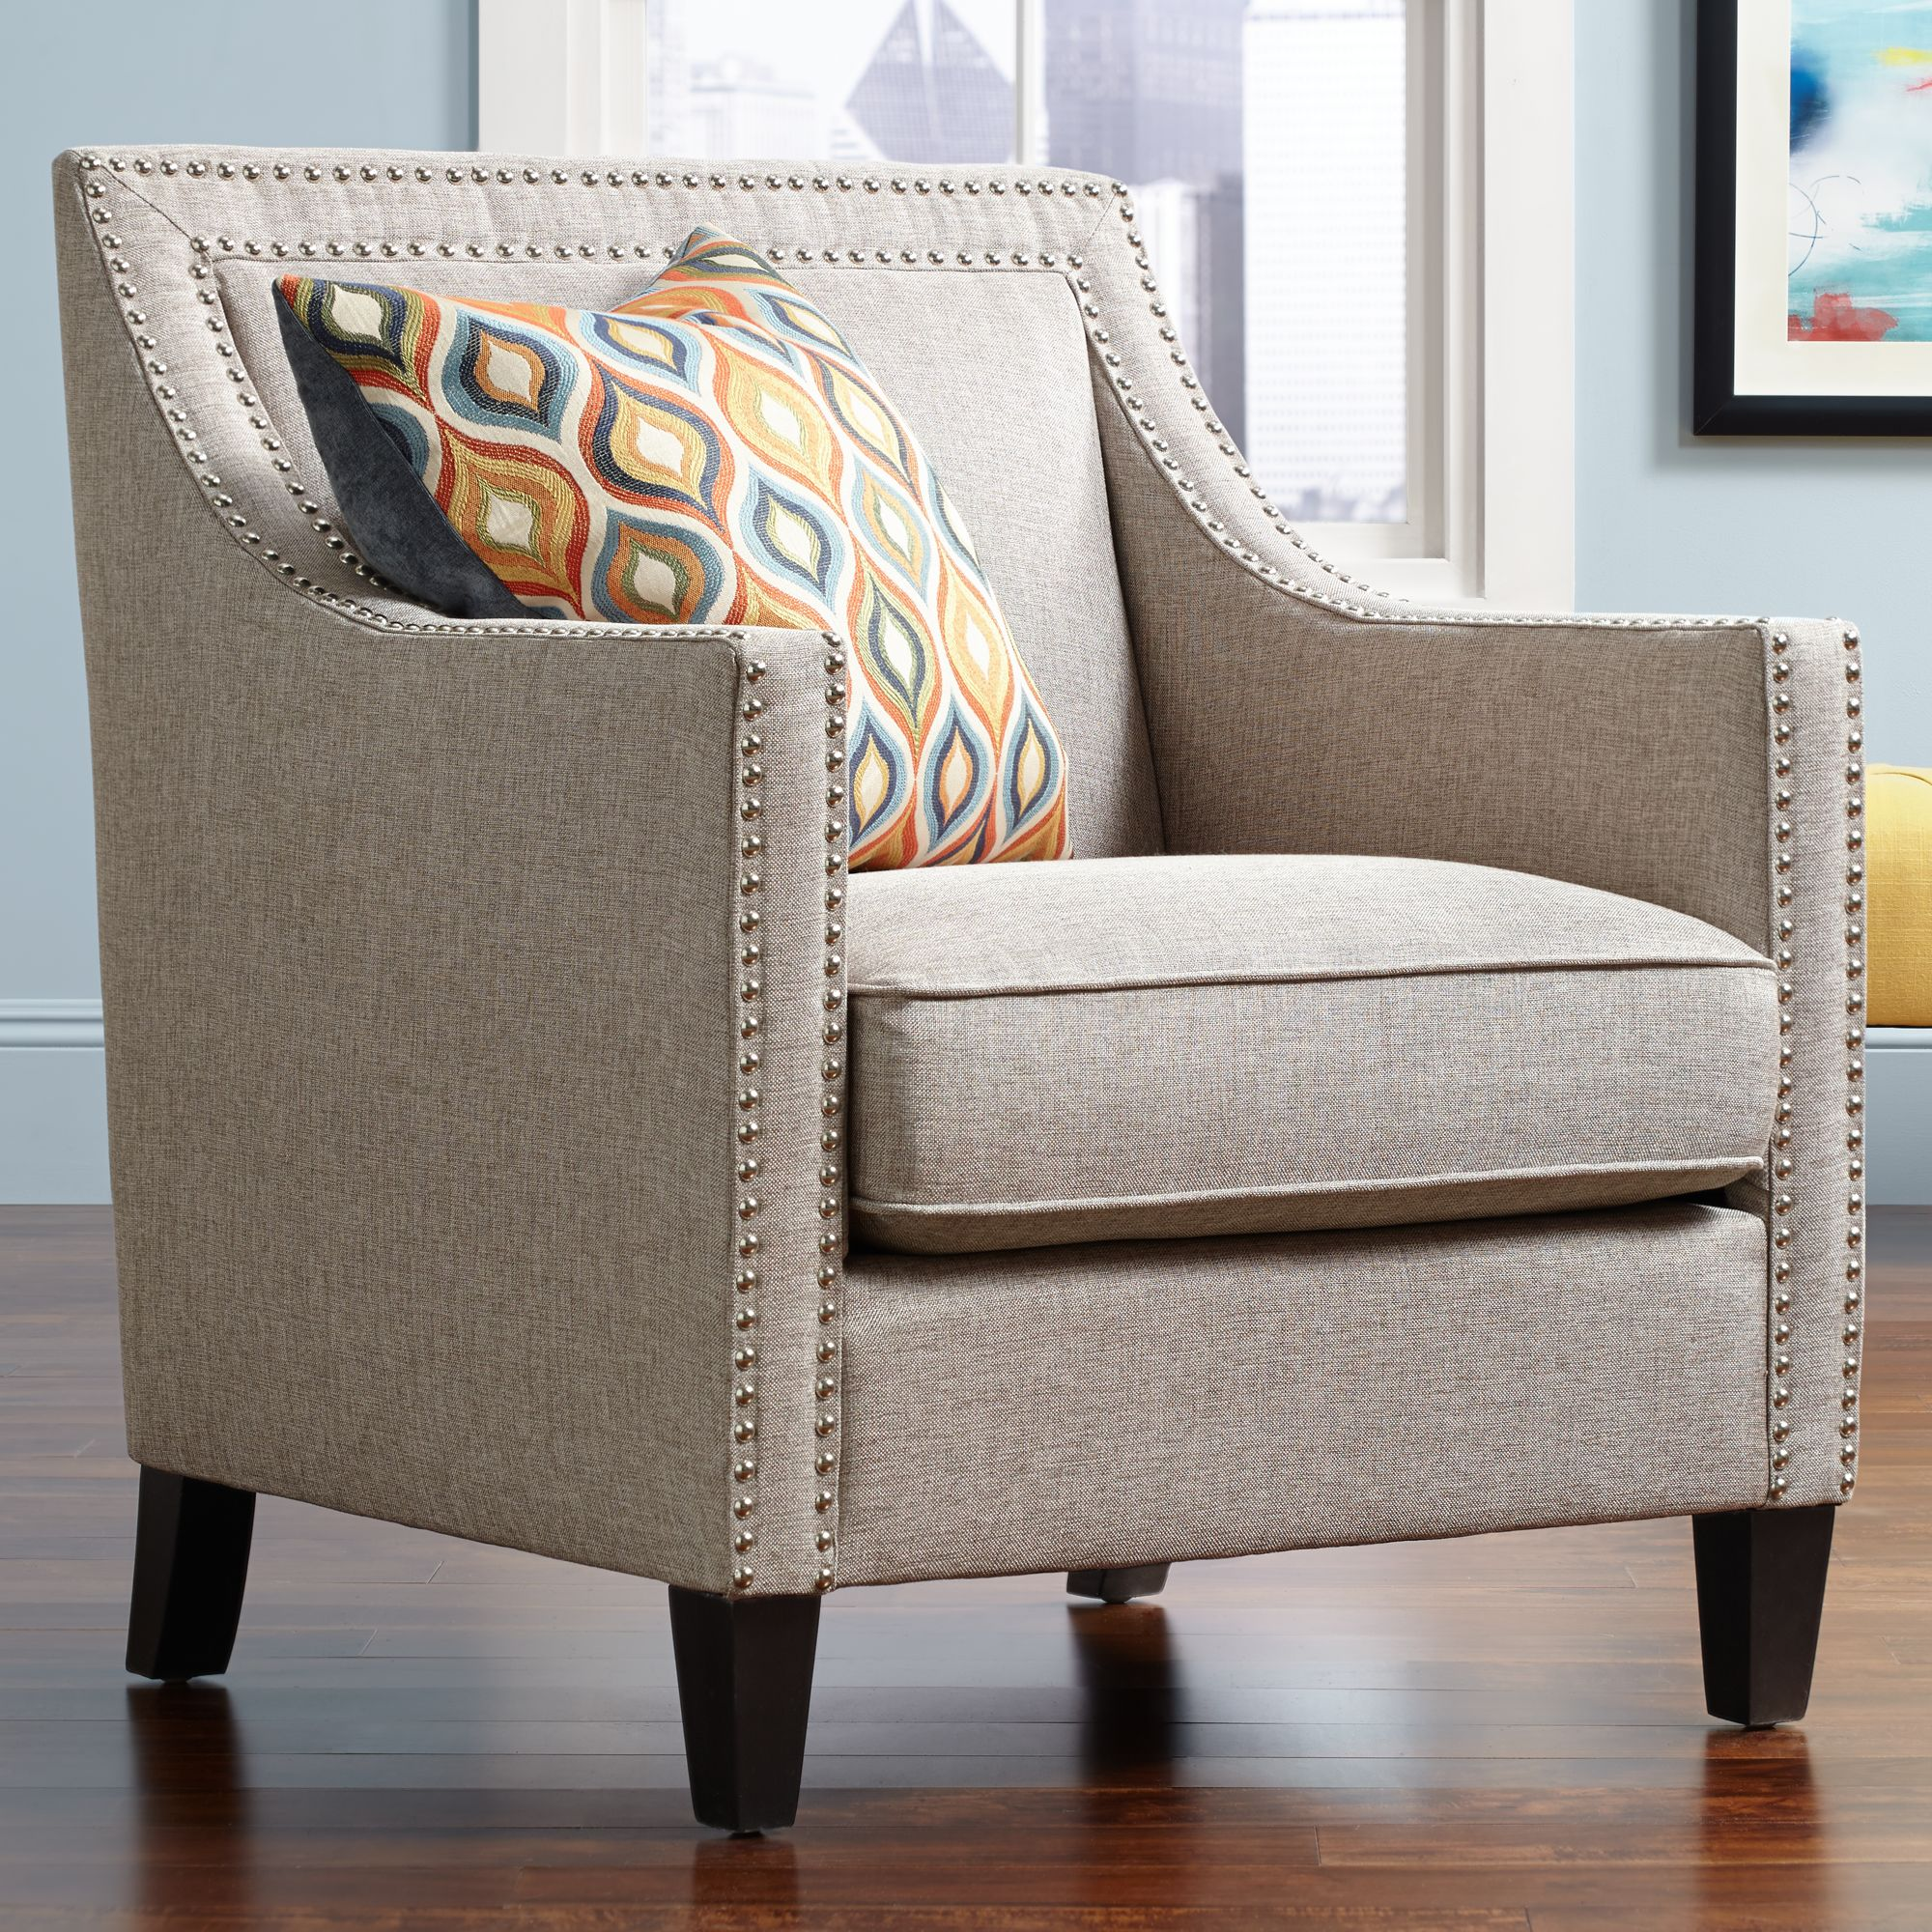 occasional chairs flynn heirloom gray upholstered armchair TEKHYFU